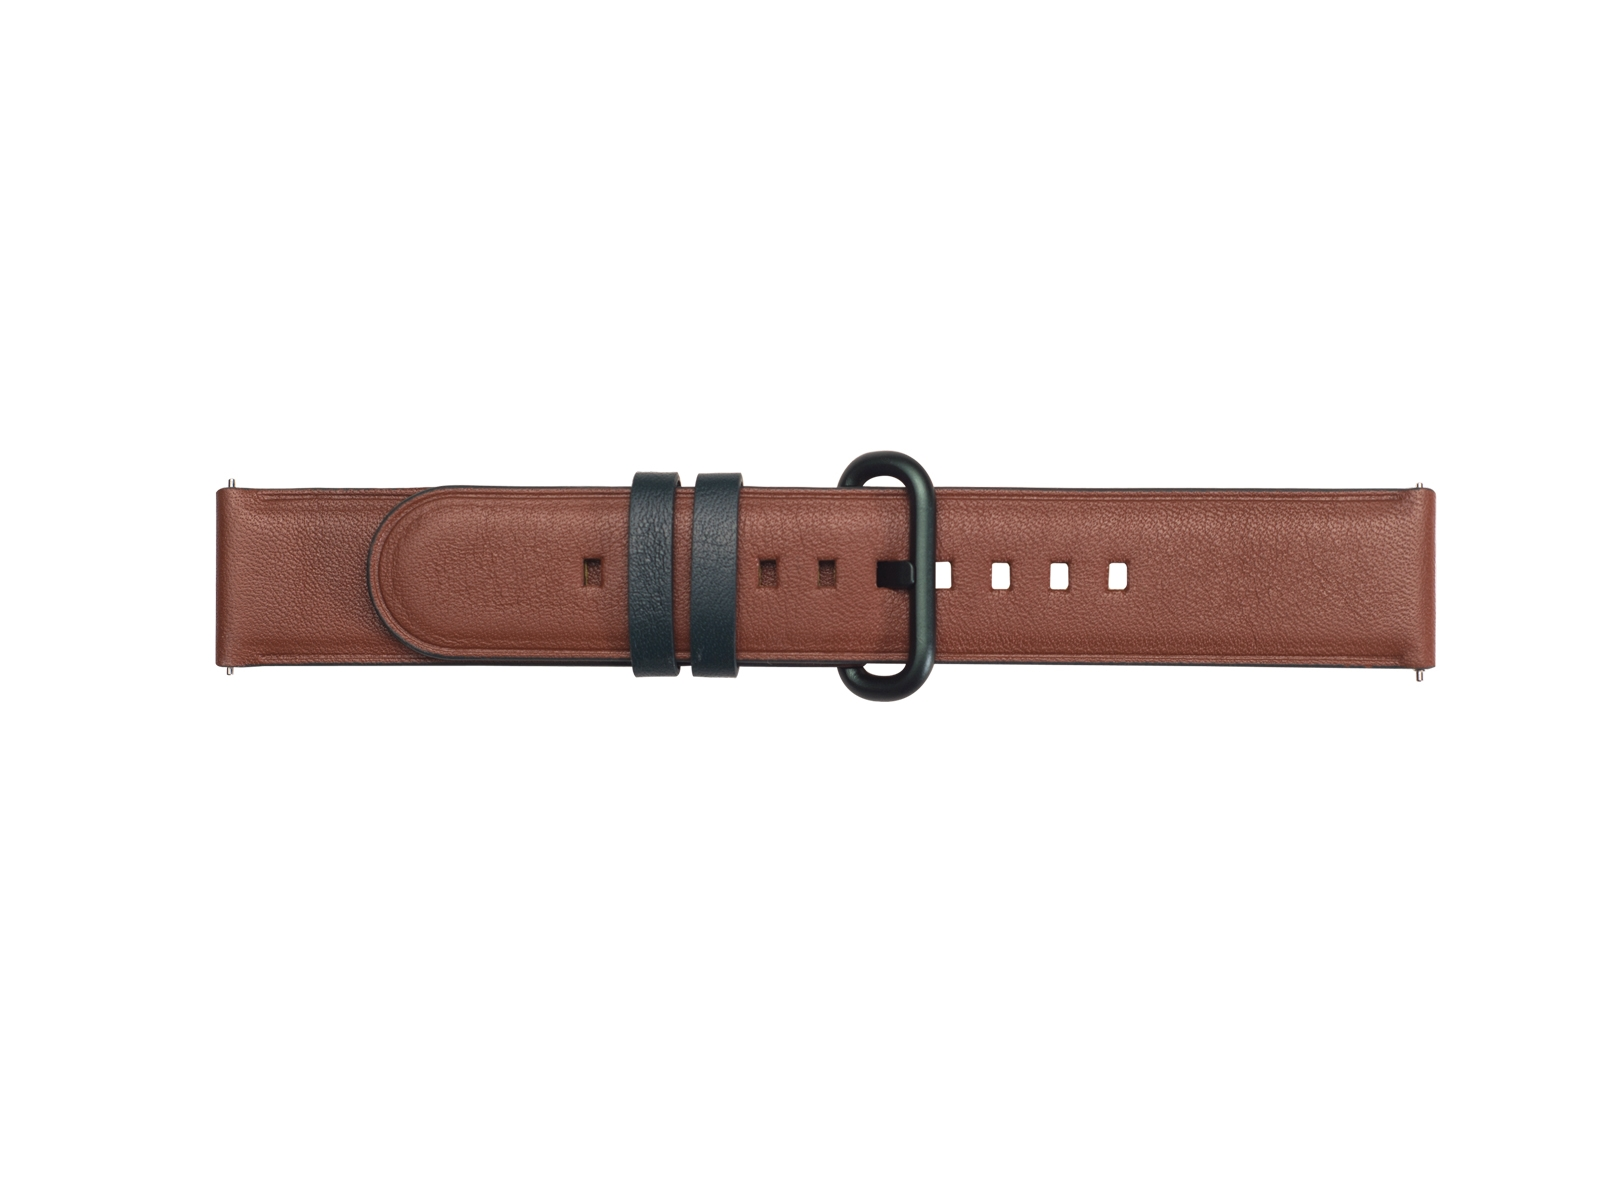 Braloba Active Leather Dress Band for Galaxy Watch Active, Galaxy Watch 42mm, Brown  - Green